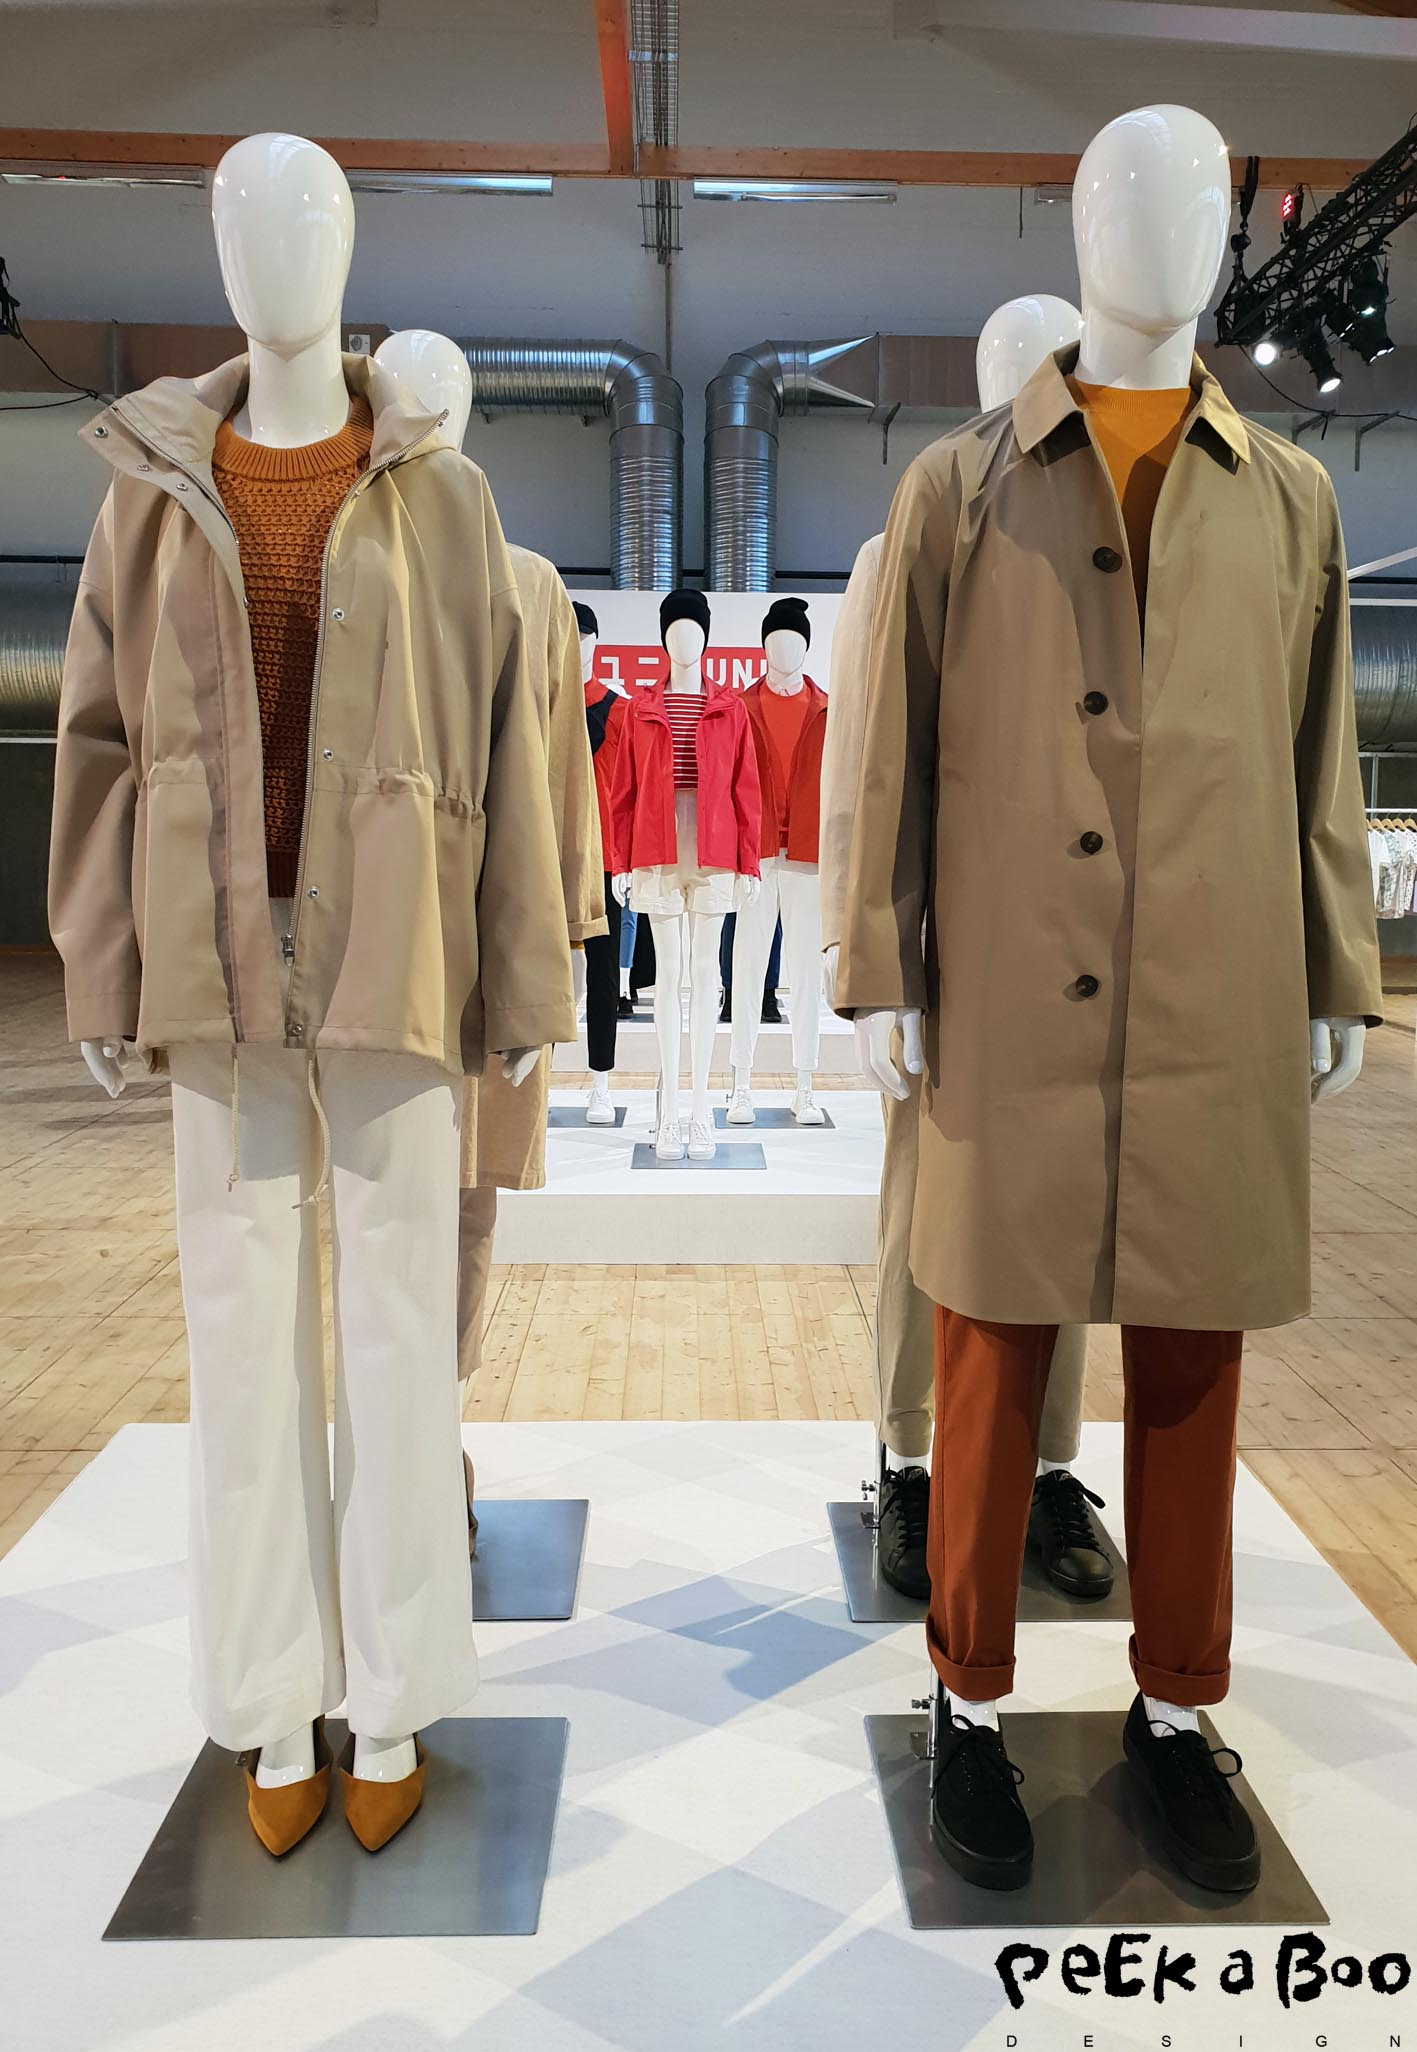 The designs from Uniqlo are all simple and functional. Their focus is on the hightech qualities and the classic longlasting designs.